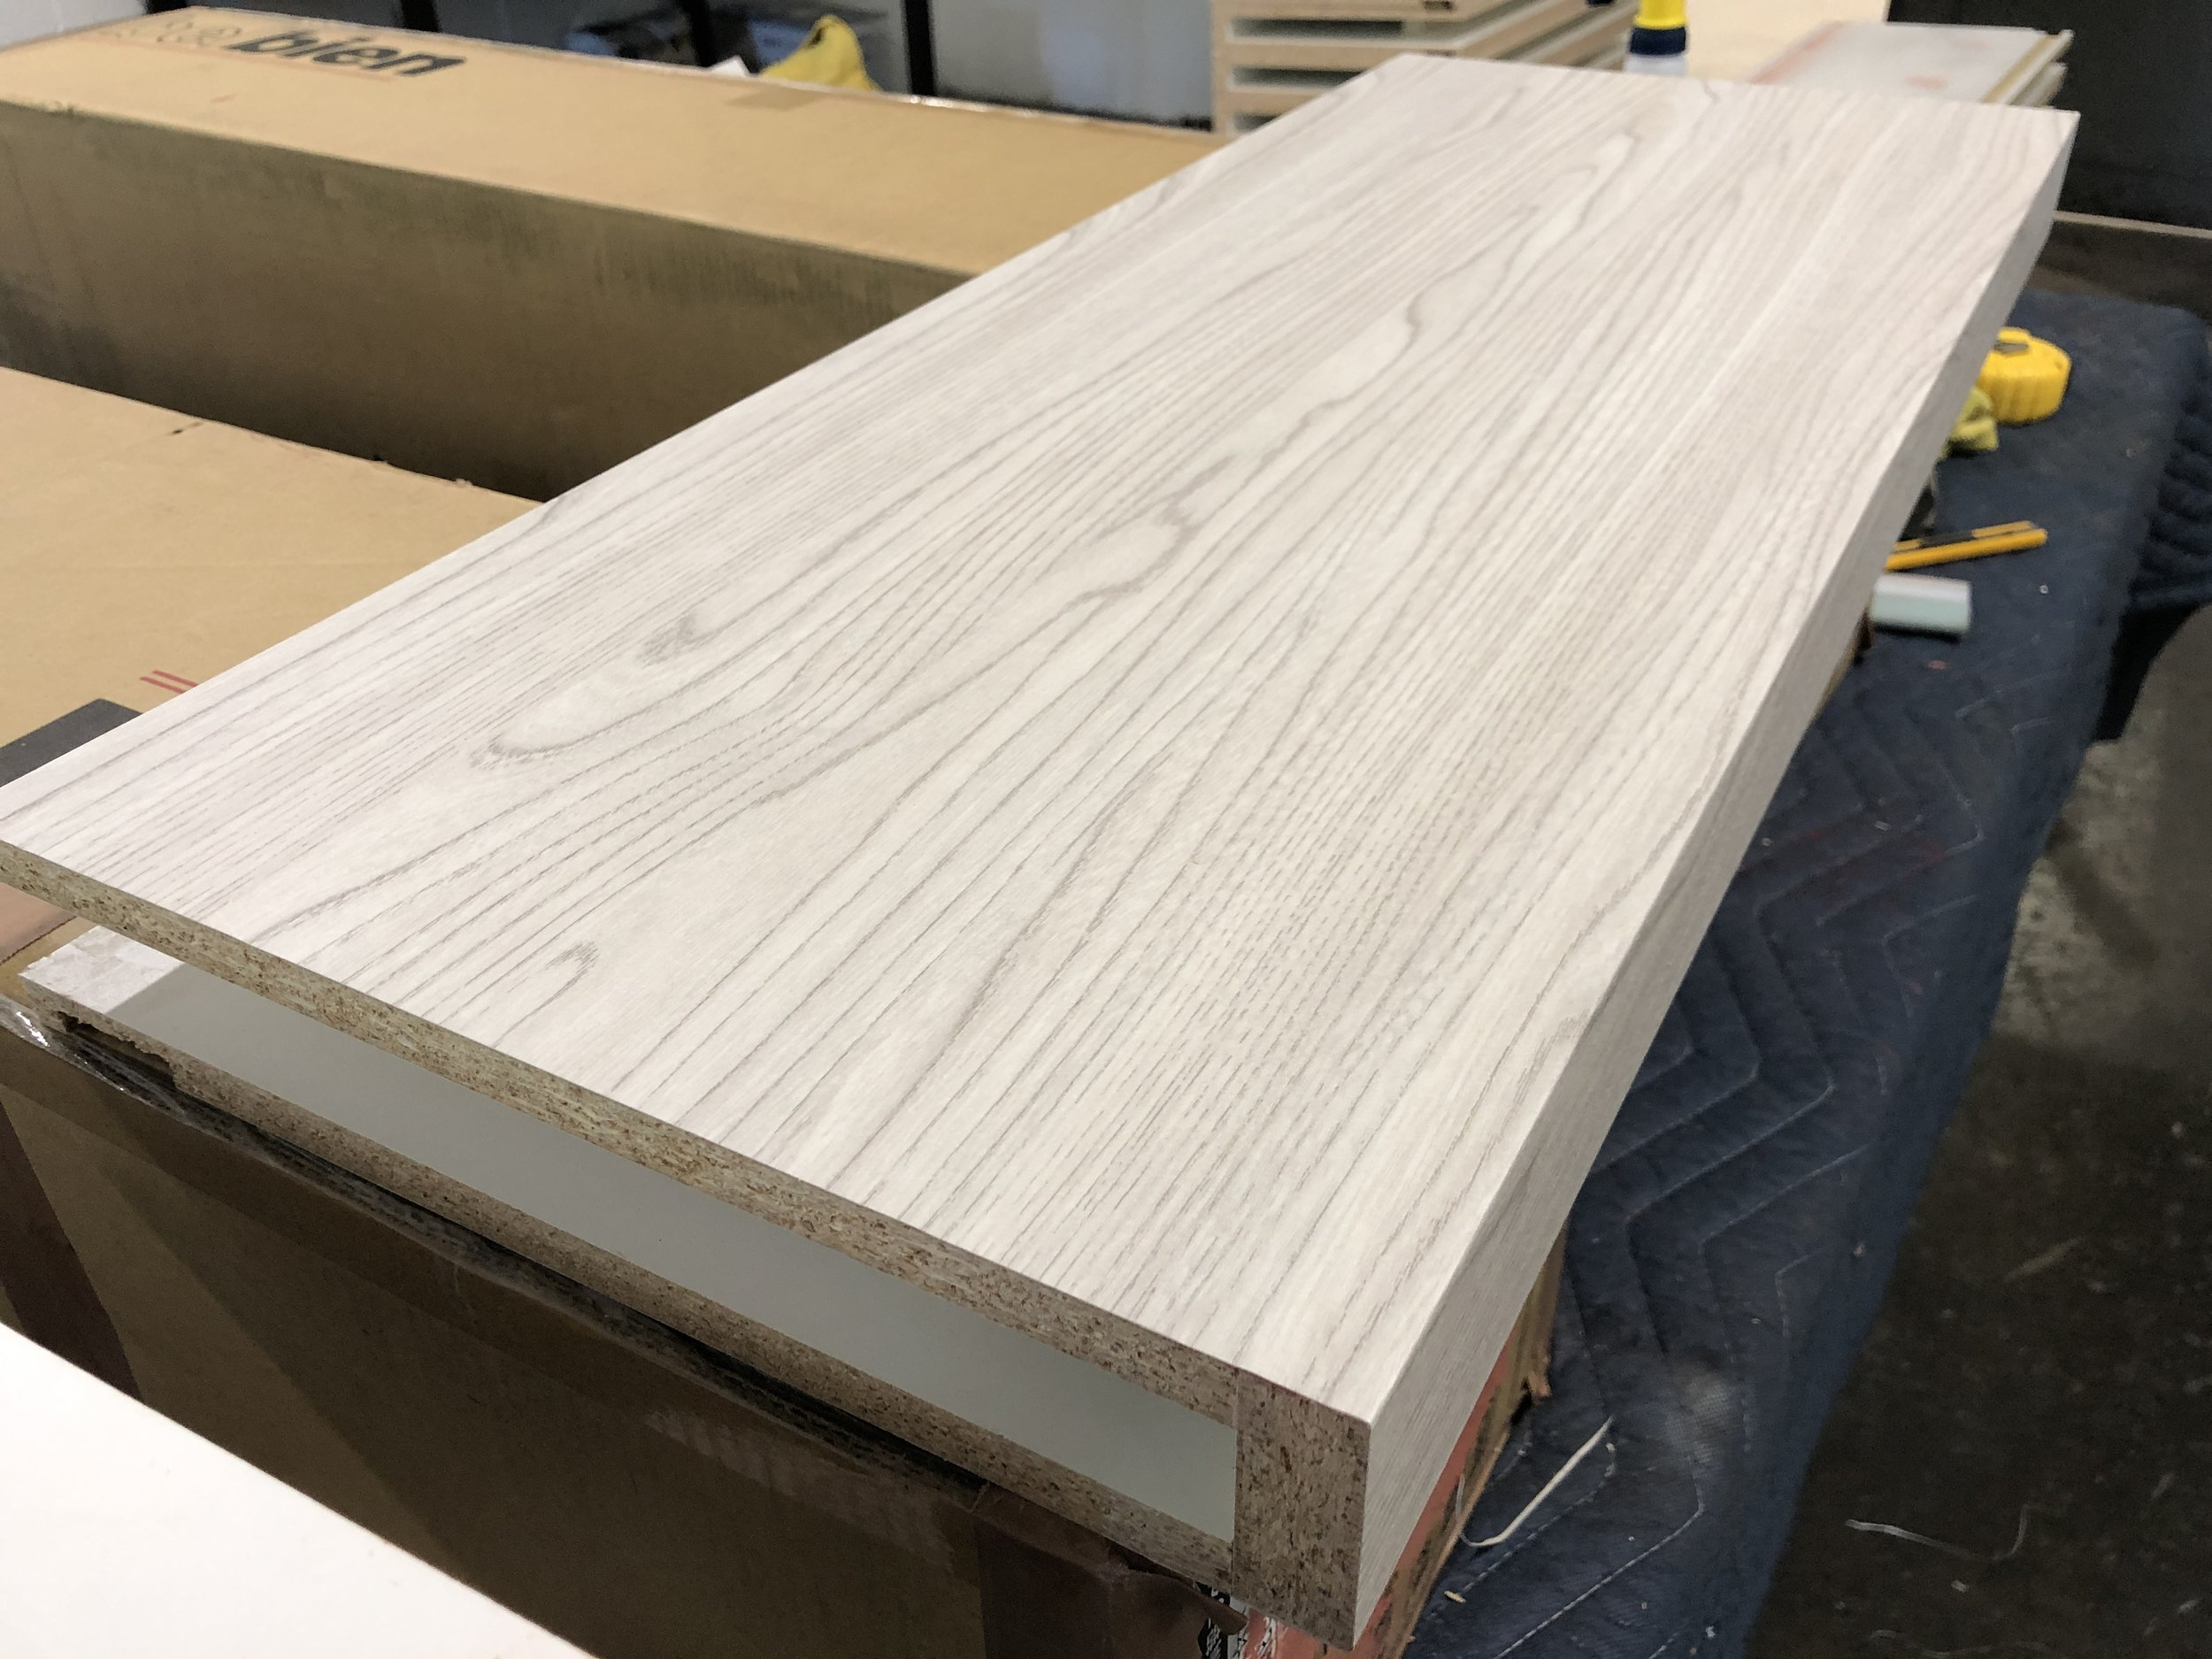 sw 127, Belbien, White wood grain, rm wraps, Grayish Elm, Super Real Wood